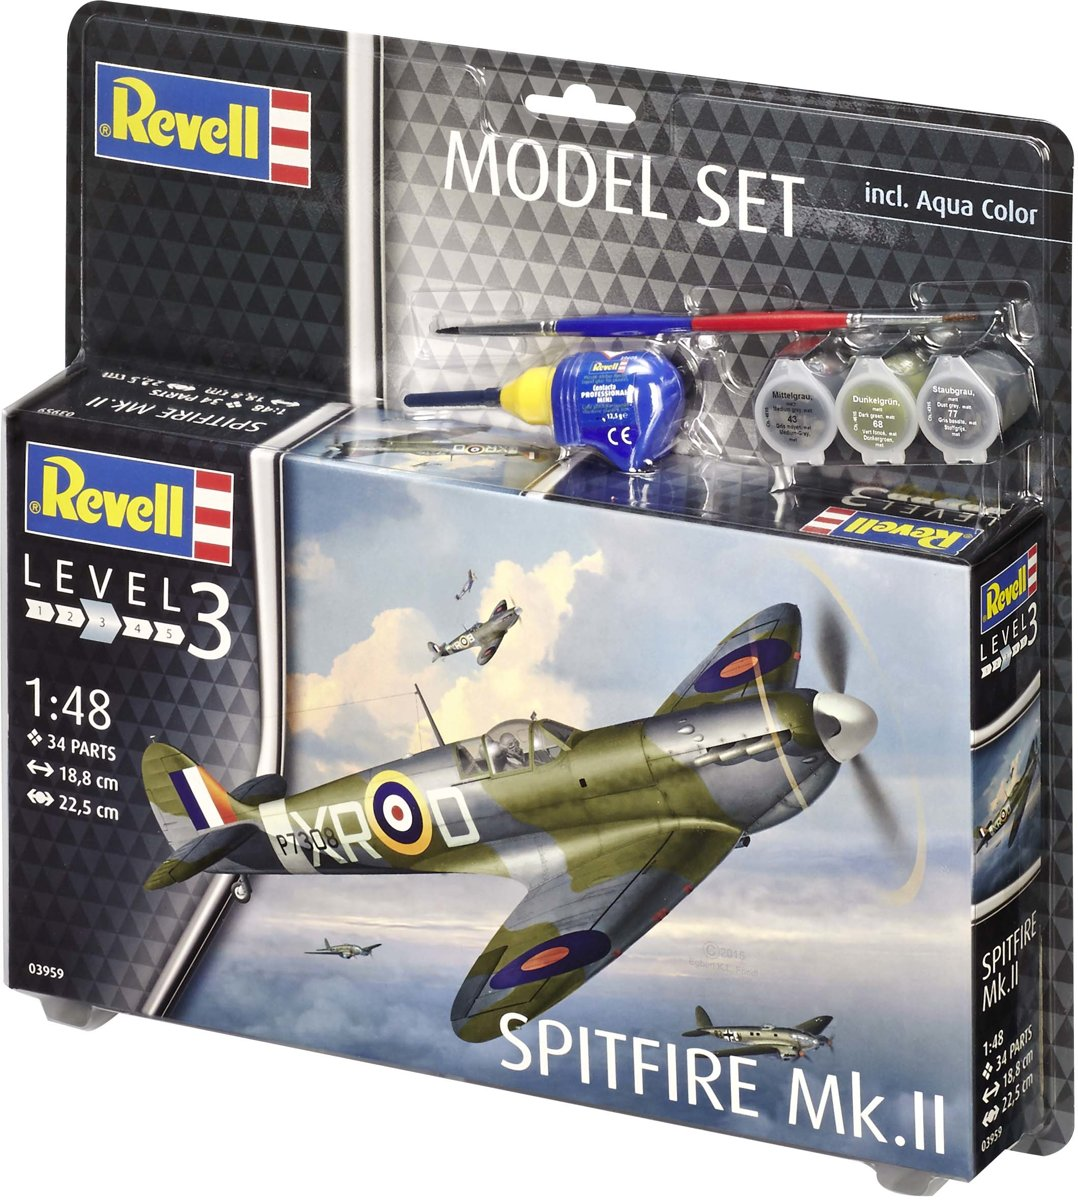 Revell Model Set Spitfire Mk.II